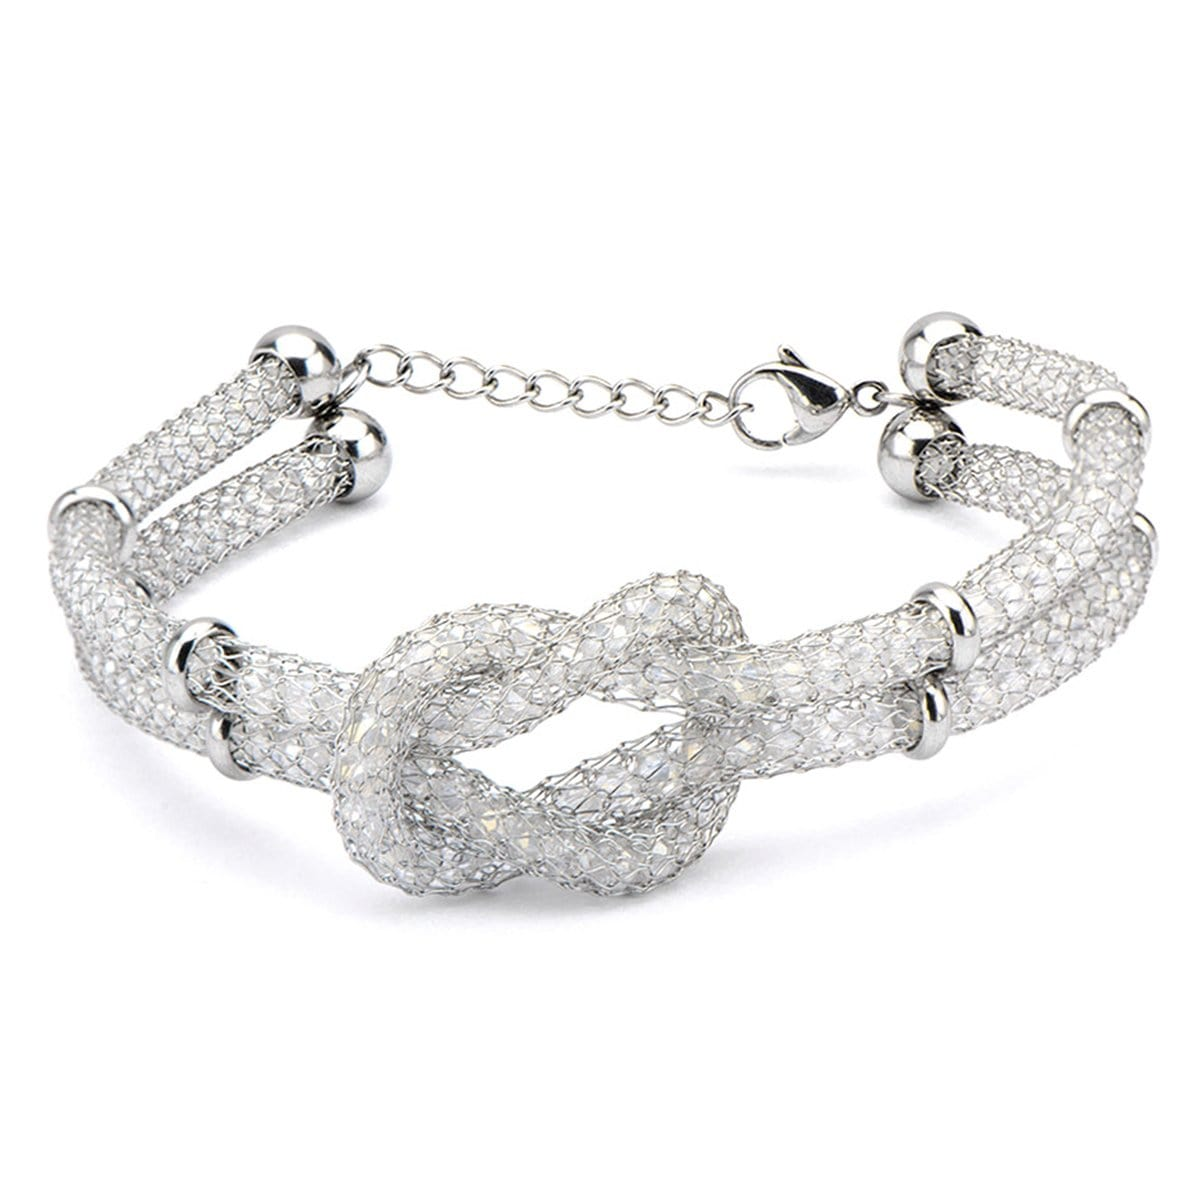 Silver Stainless Steel Hercules Knot with Bead Detail Bracelet